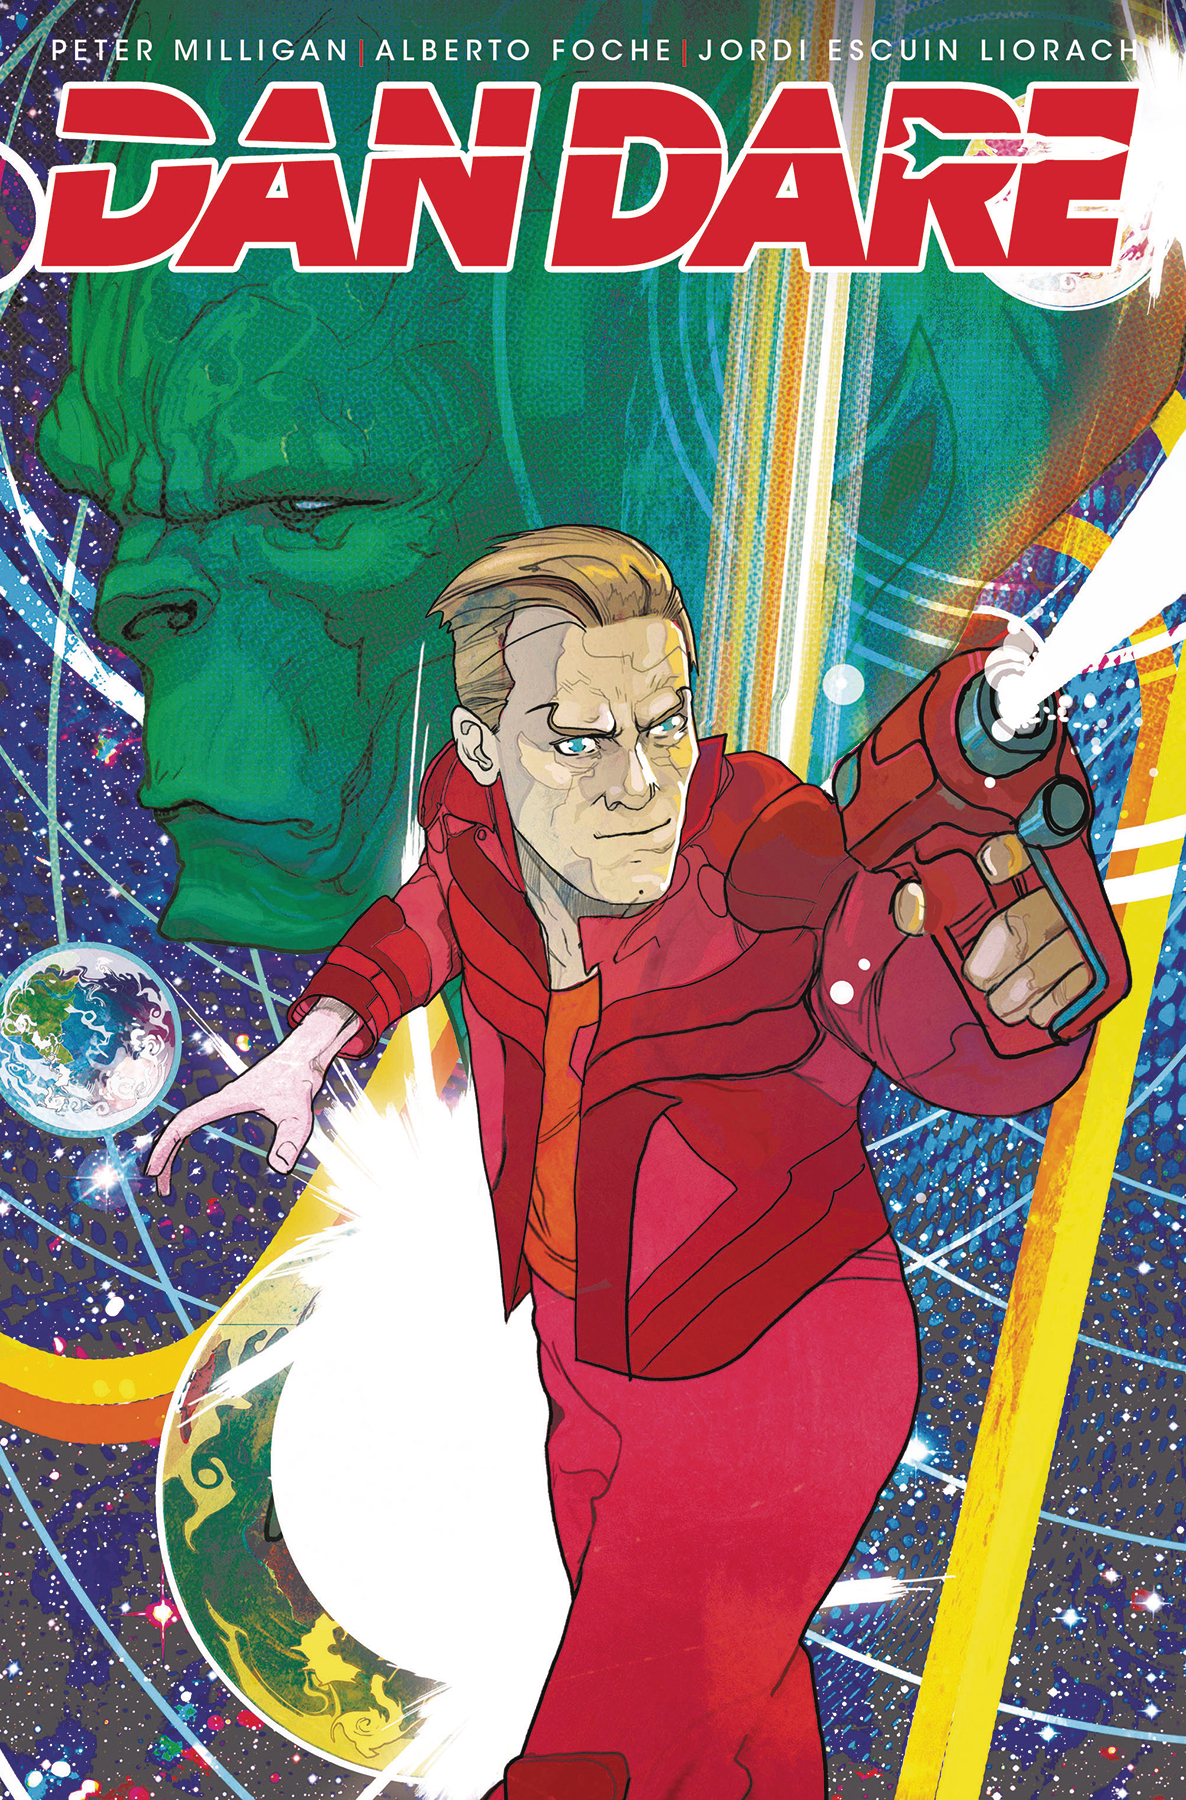 DAN DARE TP VOL 01 HE WHO DARES (MR)